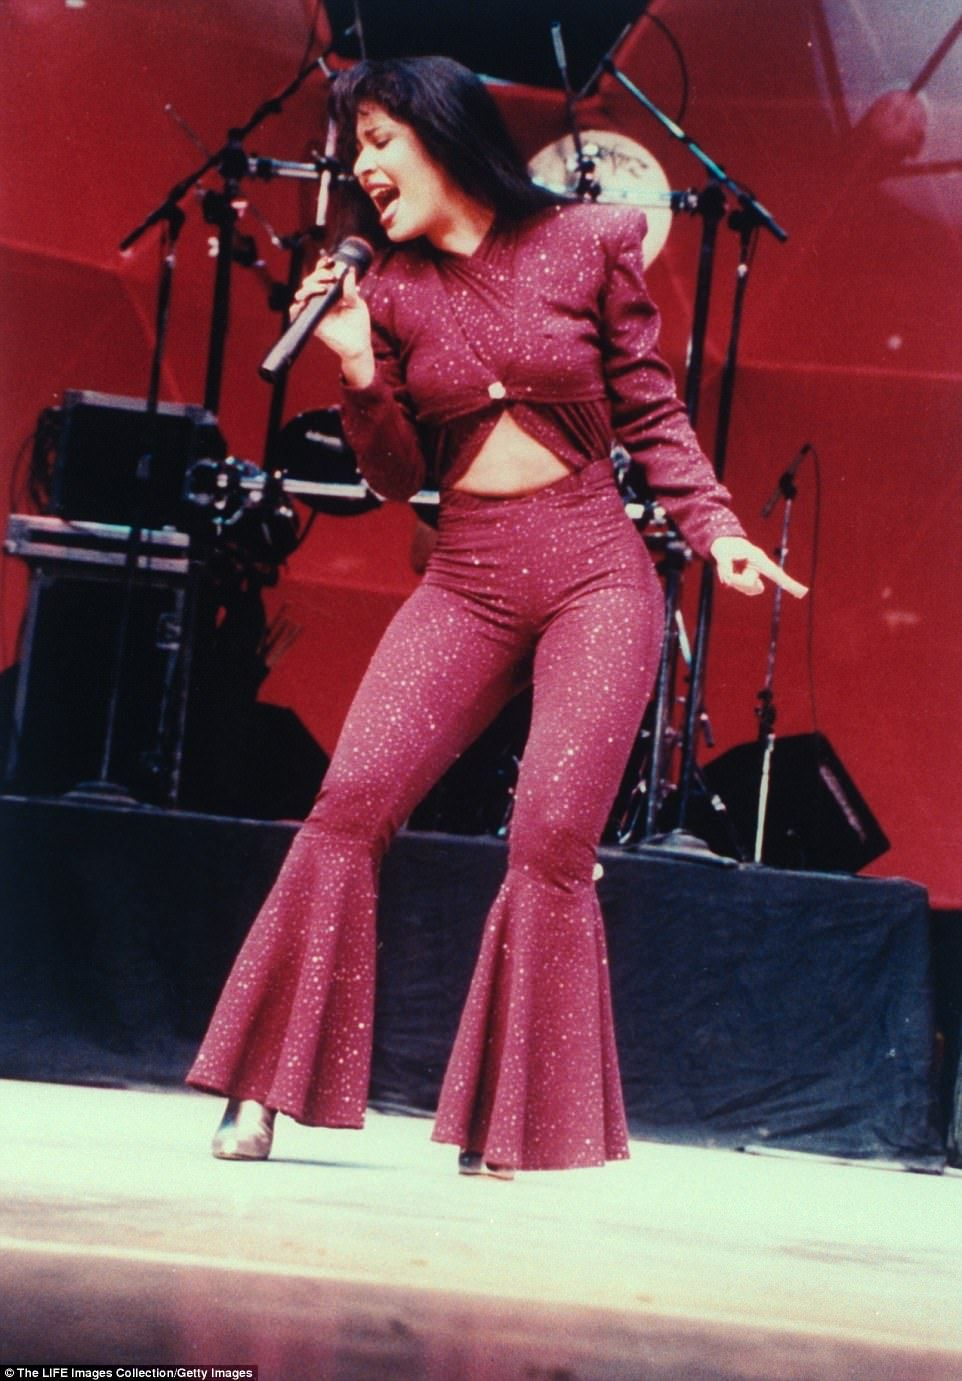 928f6ca5bba The 37-year-old slipped into a costume reminiscent of Selena s now iconic  purple jumpsuit for a dance routine captured on Snapchat.